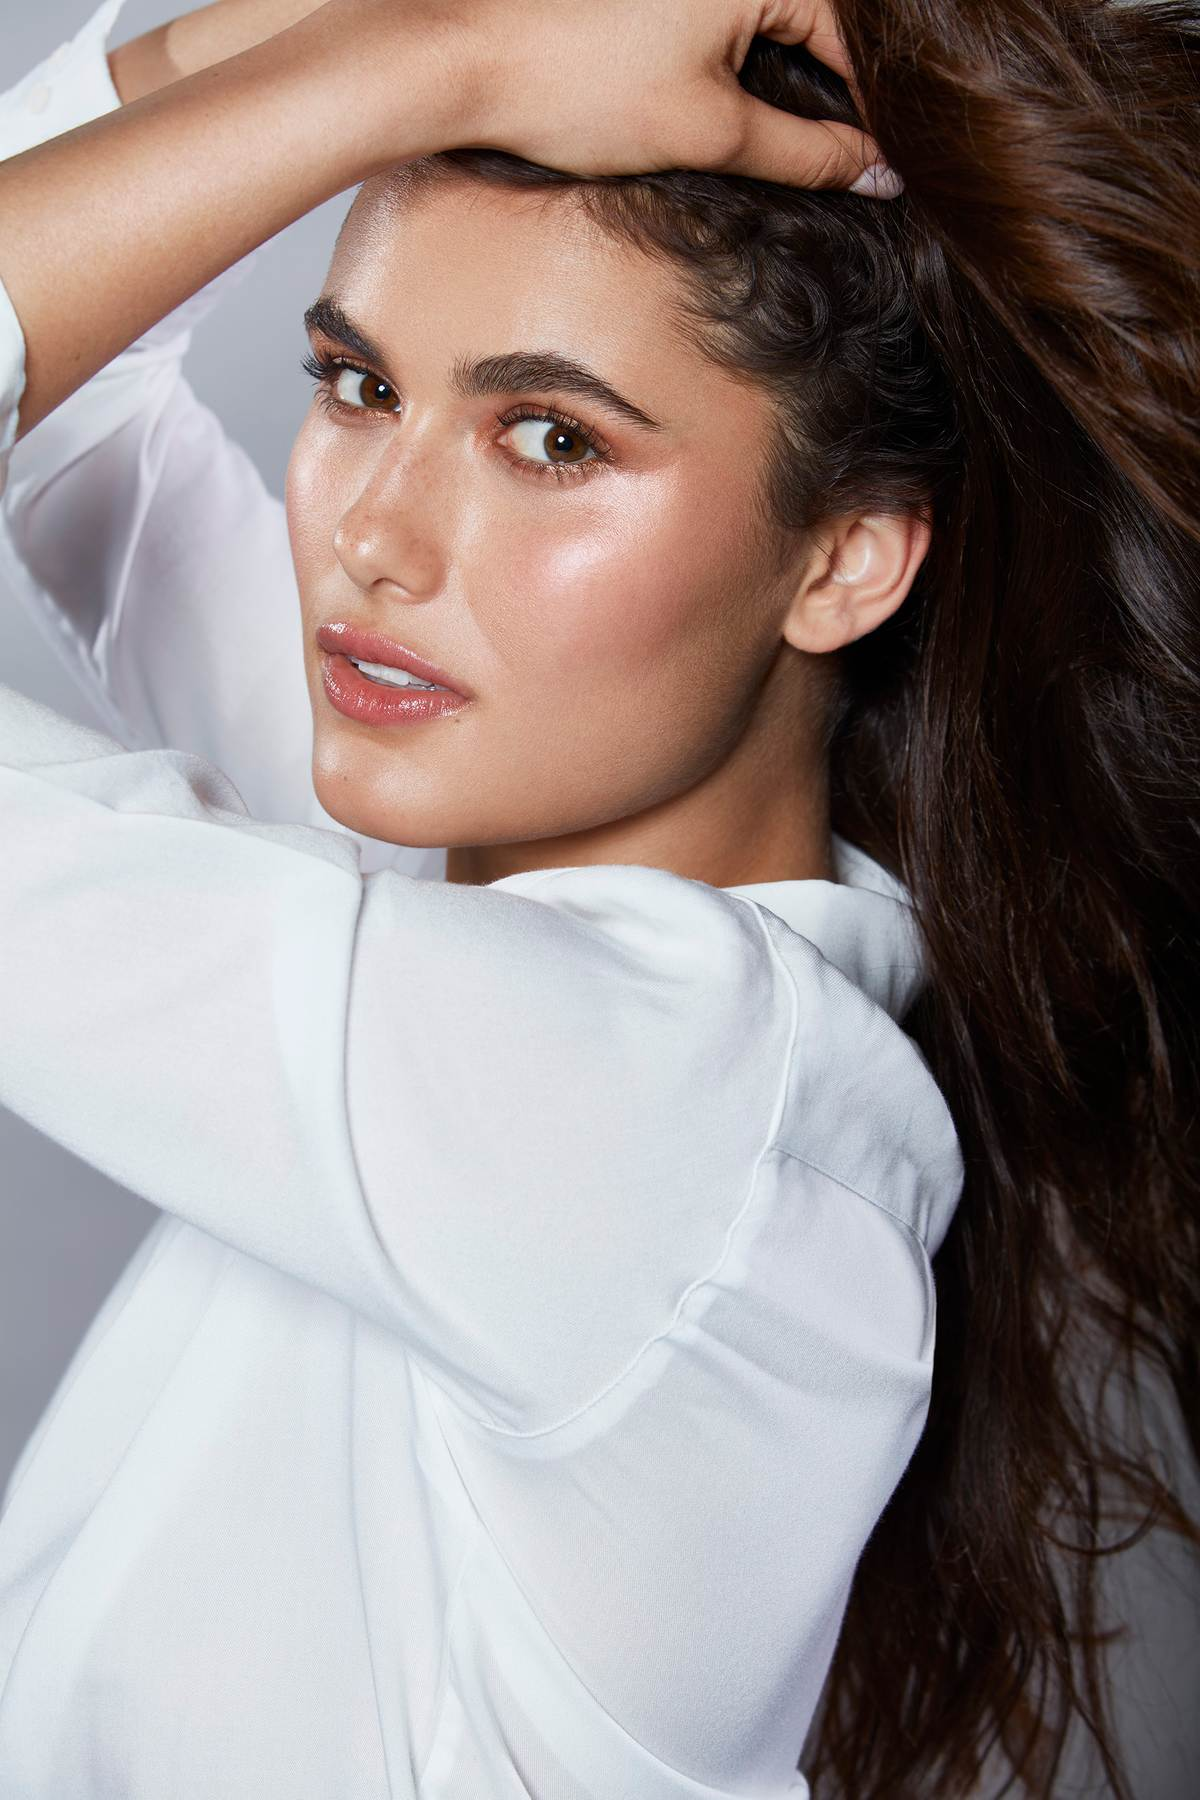 Female Model with  glowing skin and fresh look